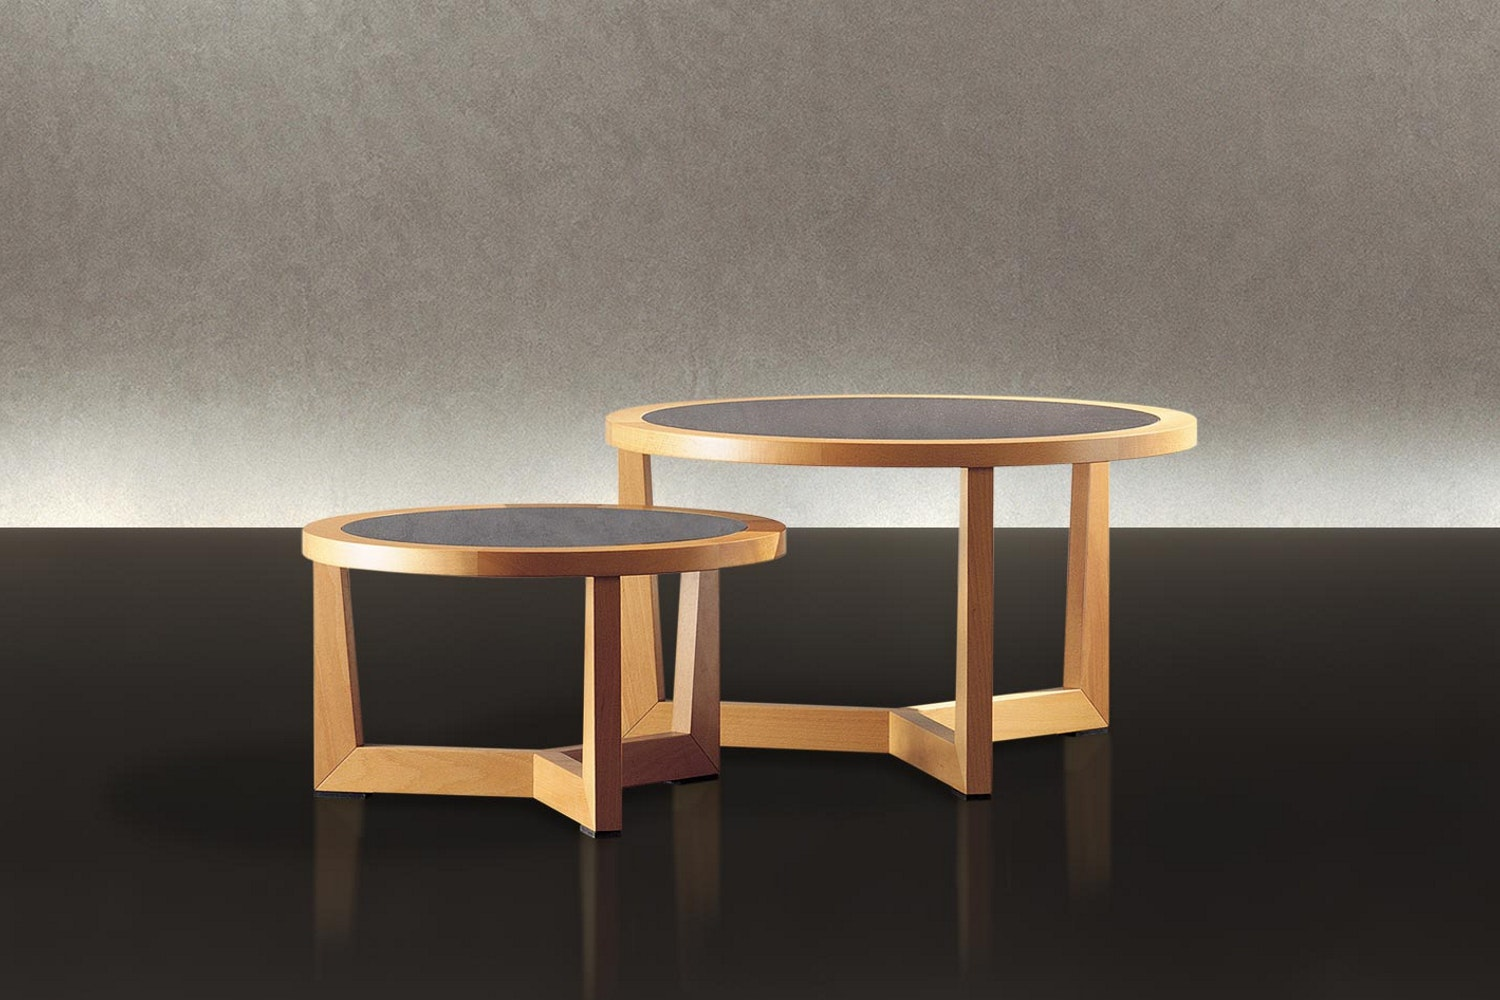 Reverso Coffee Table by Massimo Scolari for Giorgetti